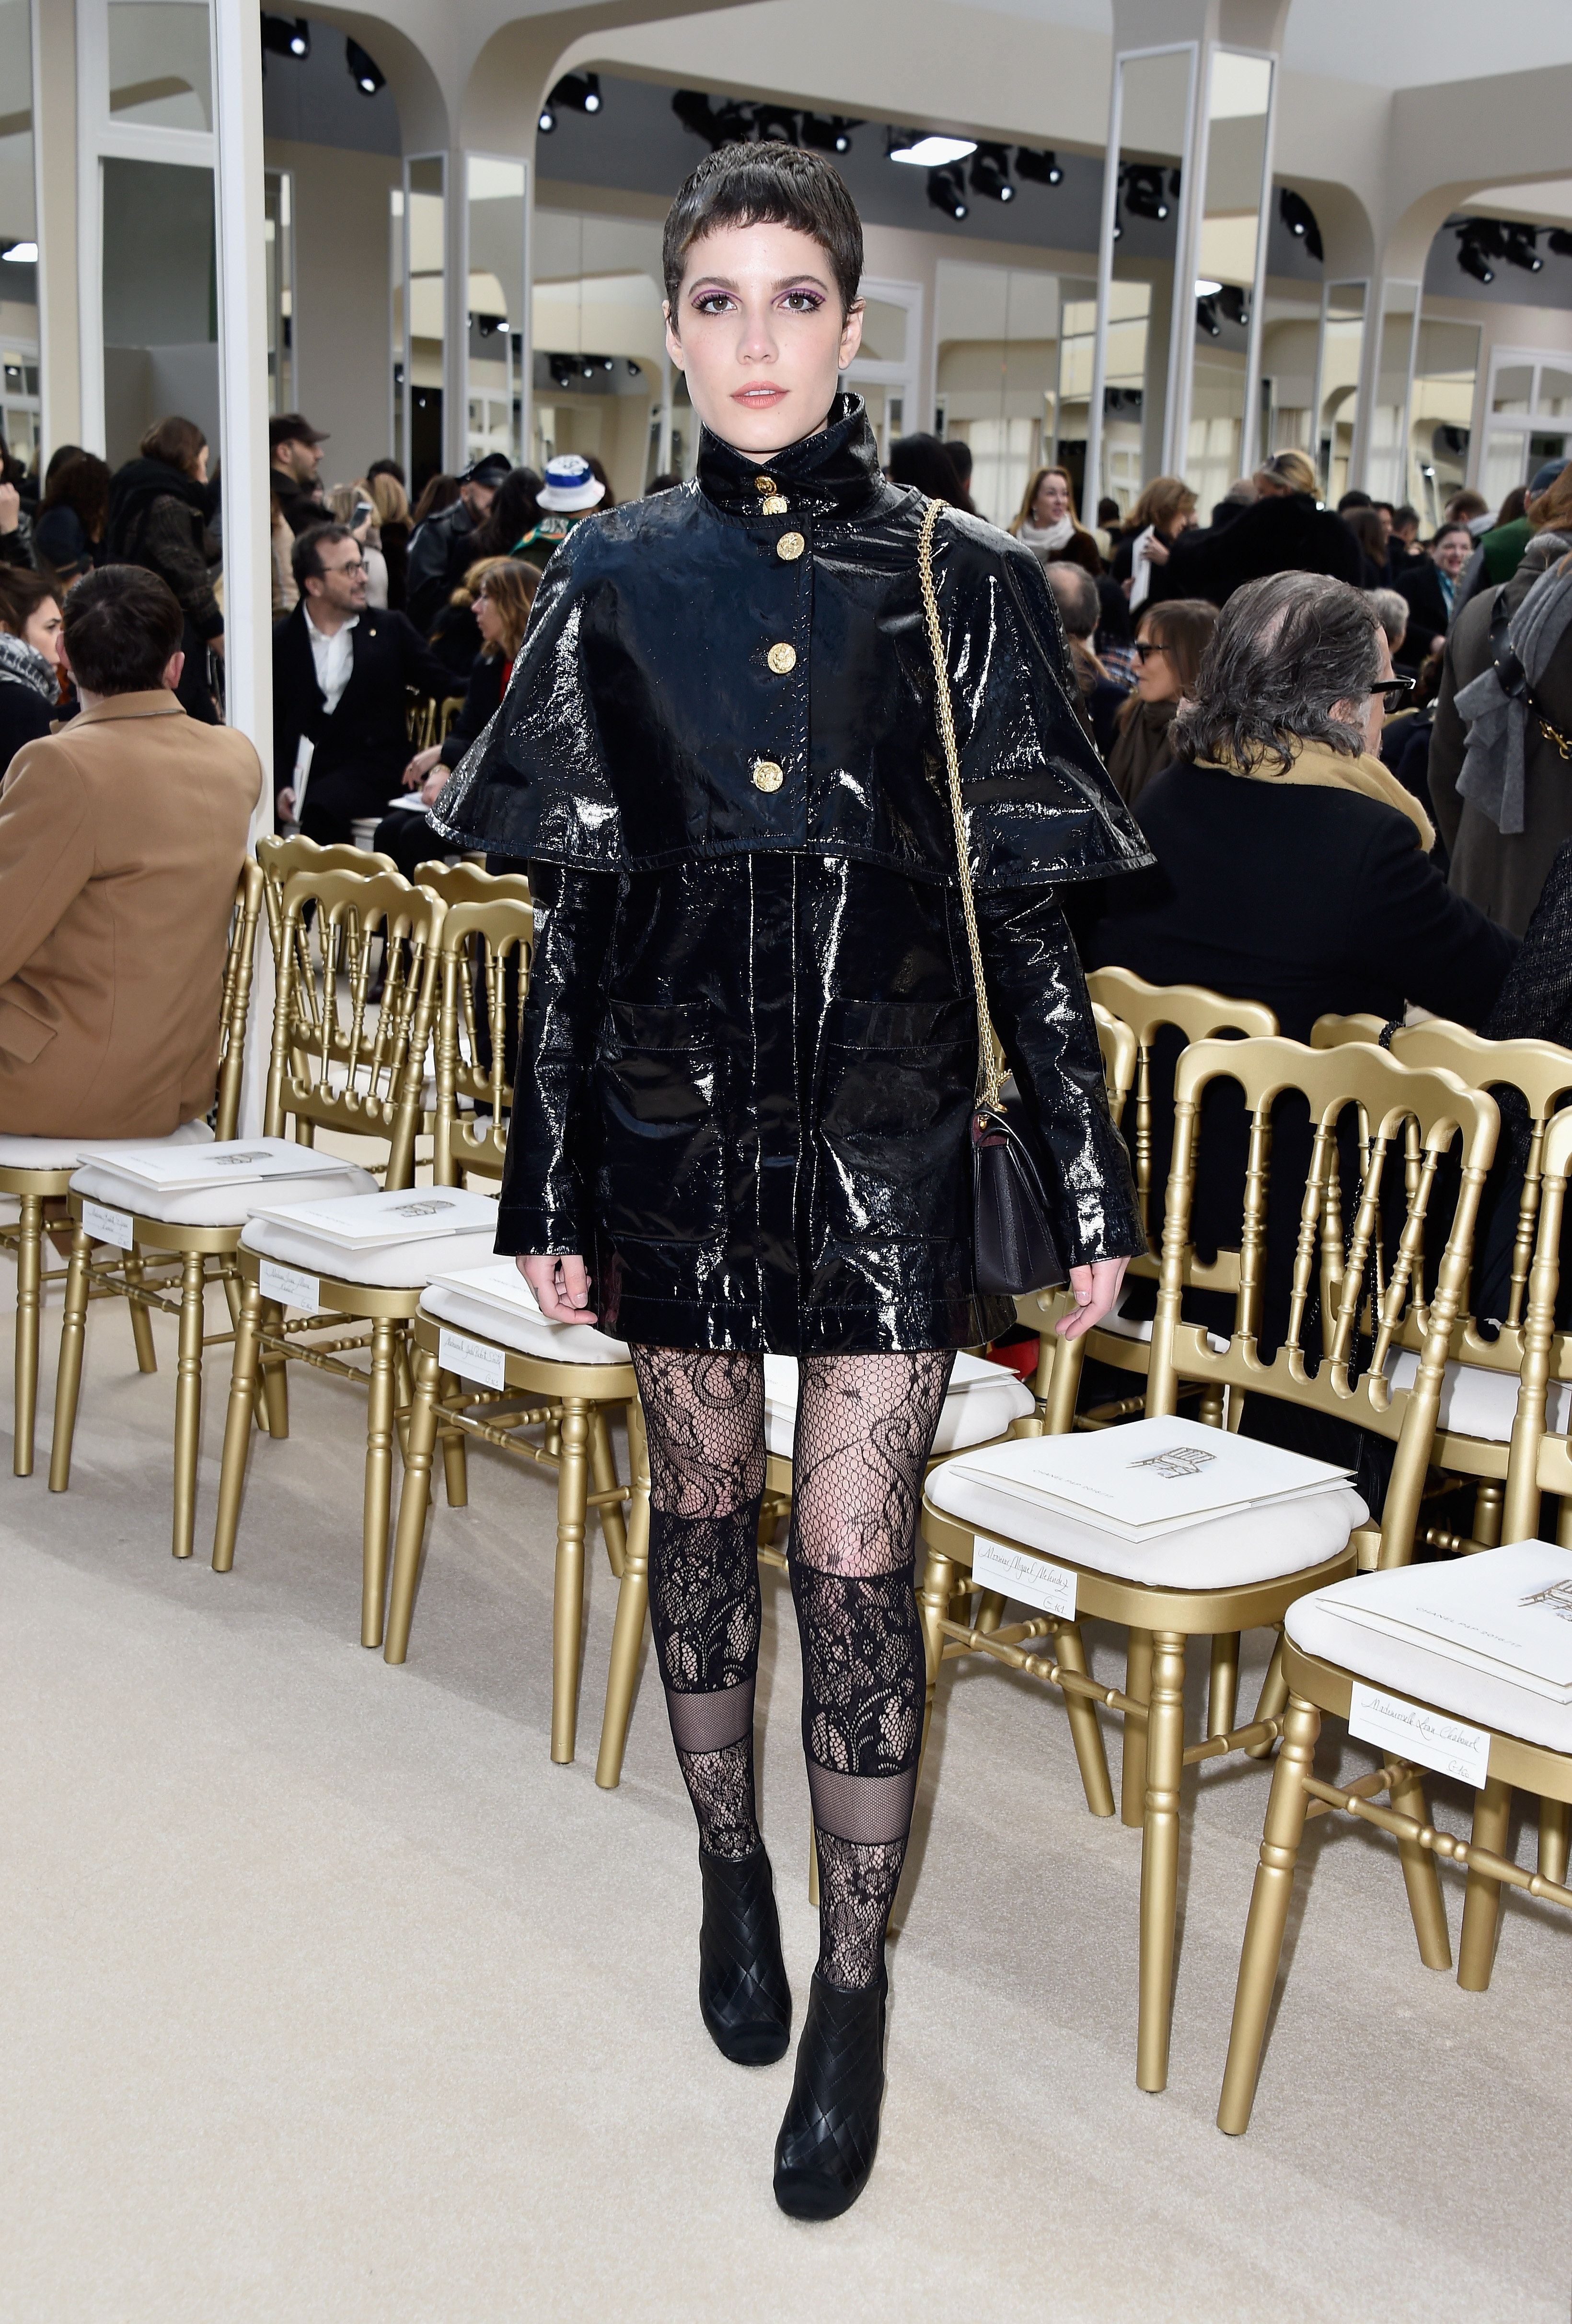 At the Chanel show during Paris Fashion Week on March 8.